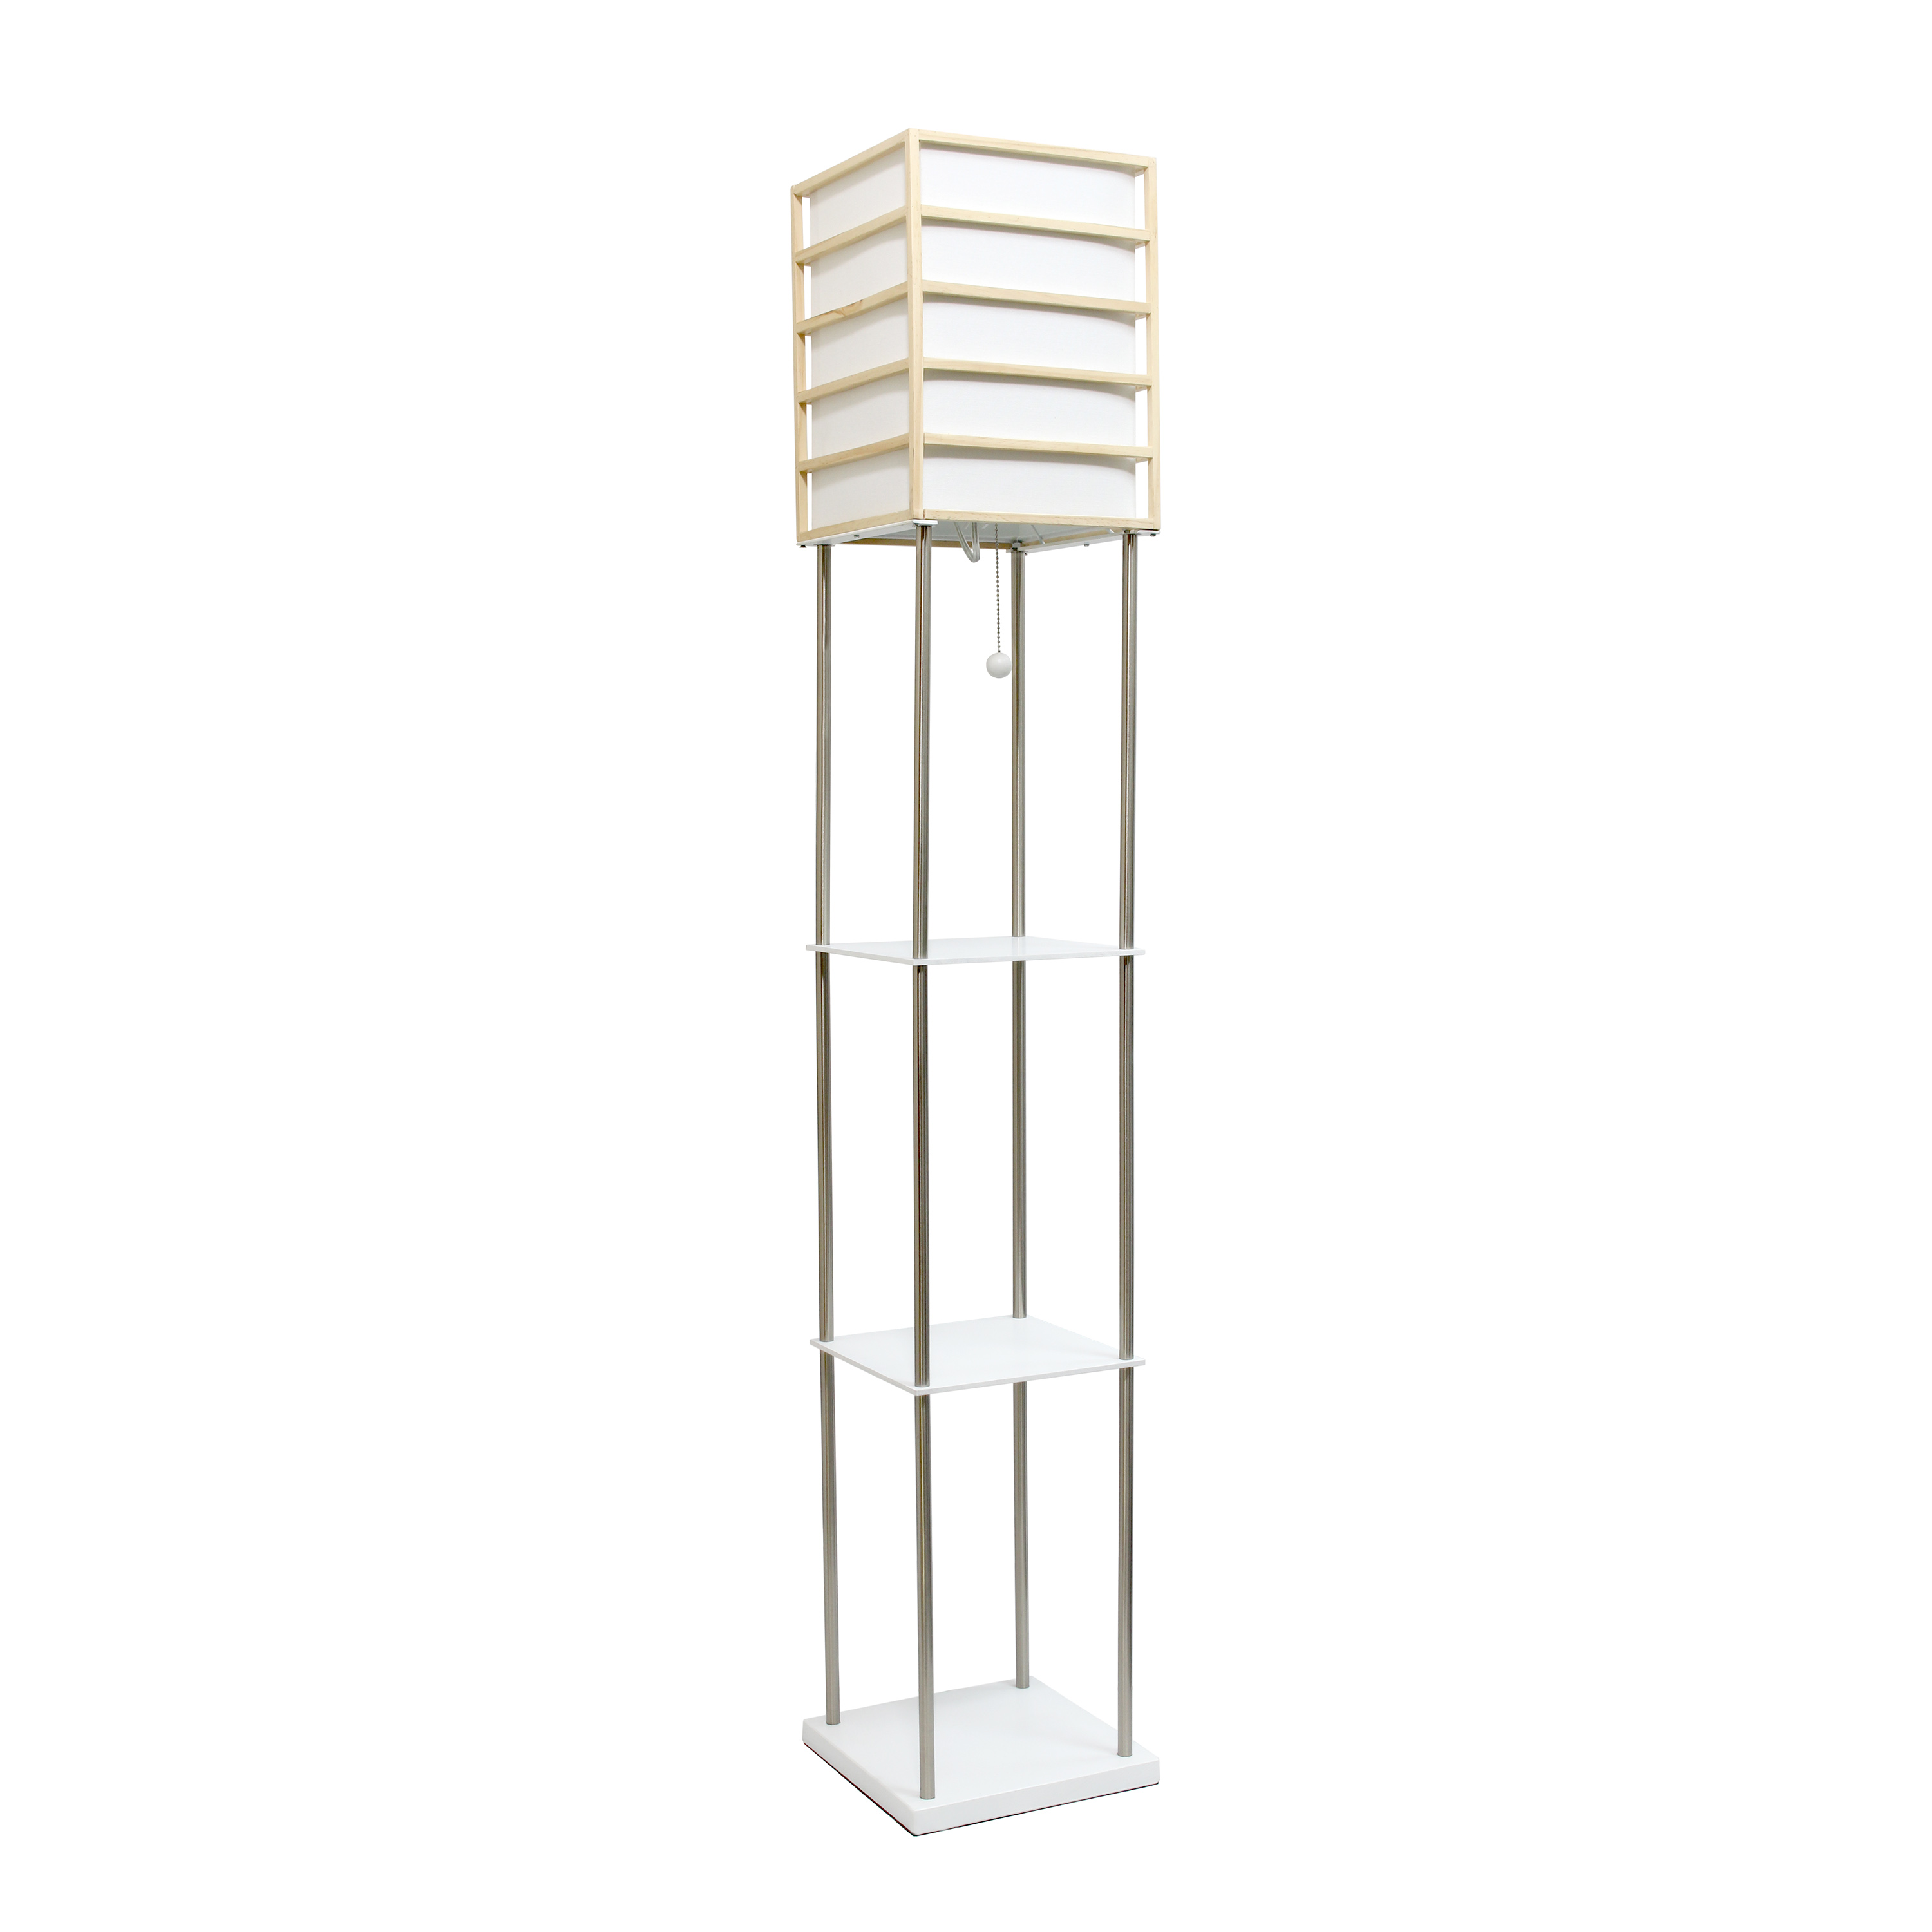 Lalia Home 1 Light Metal Etagere Floor Lamp with Storage Shelves and Linen Shade, Light Wood